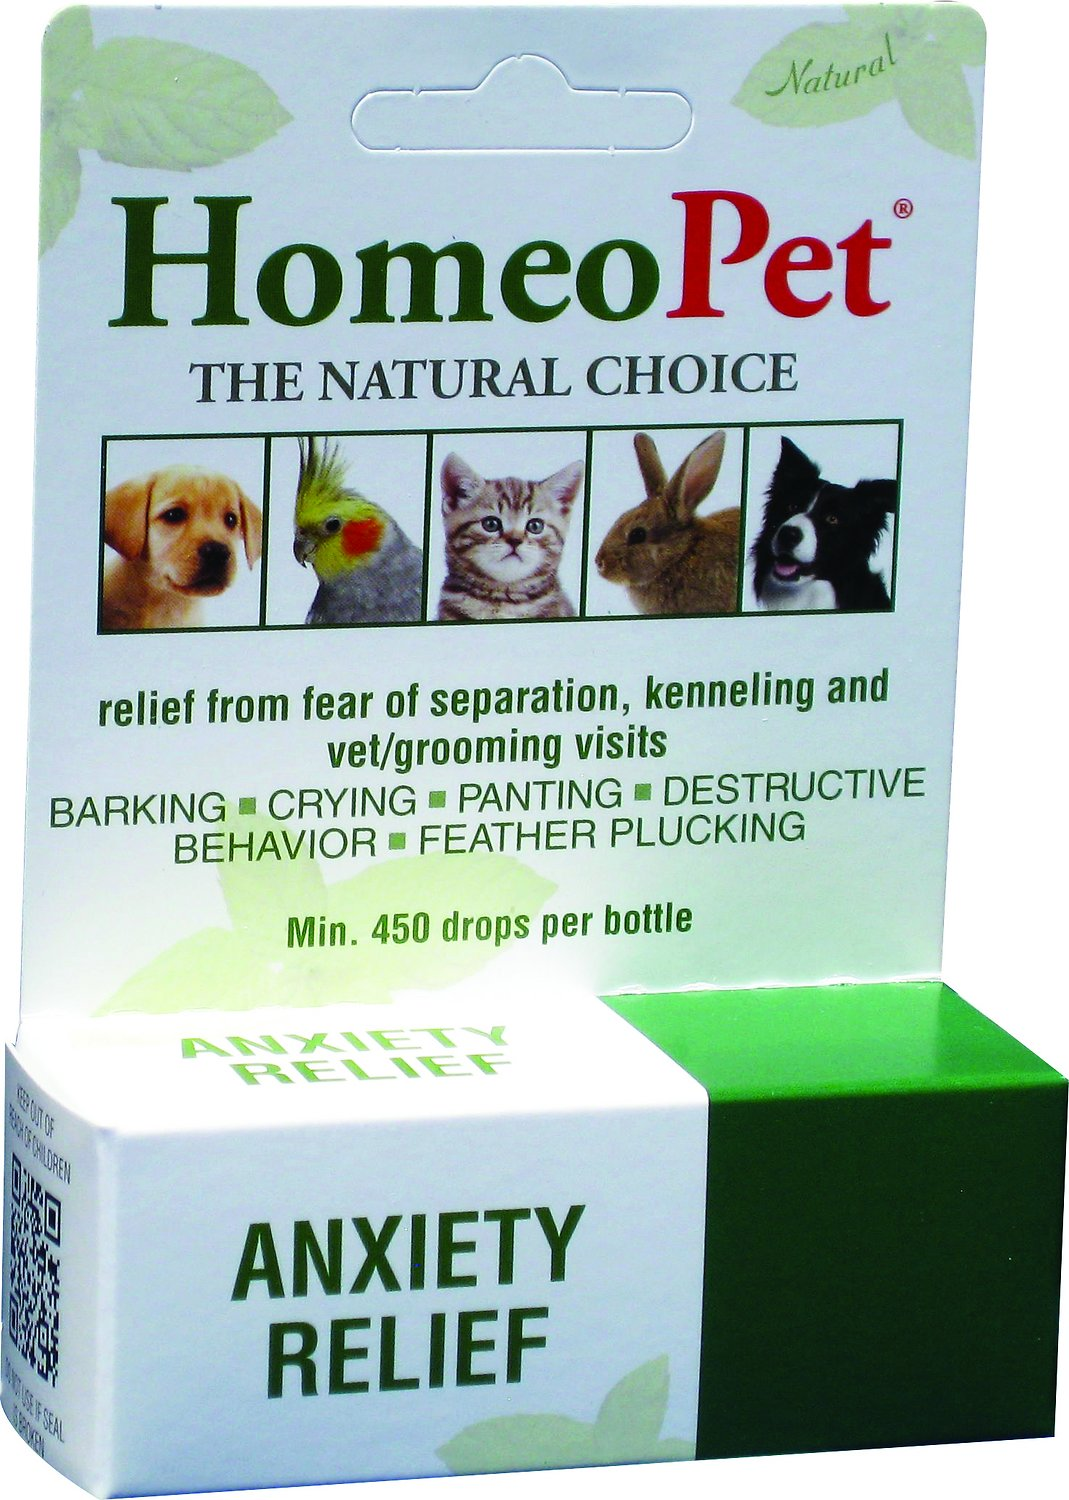 HomeoPet Anxiety Relief Dog, Cat, Bird & Small Animal Supplement, 450 drops